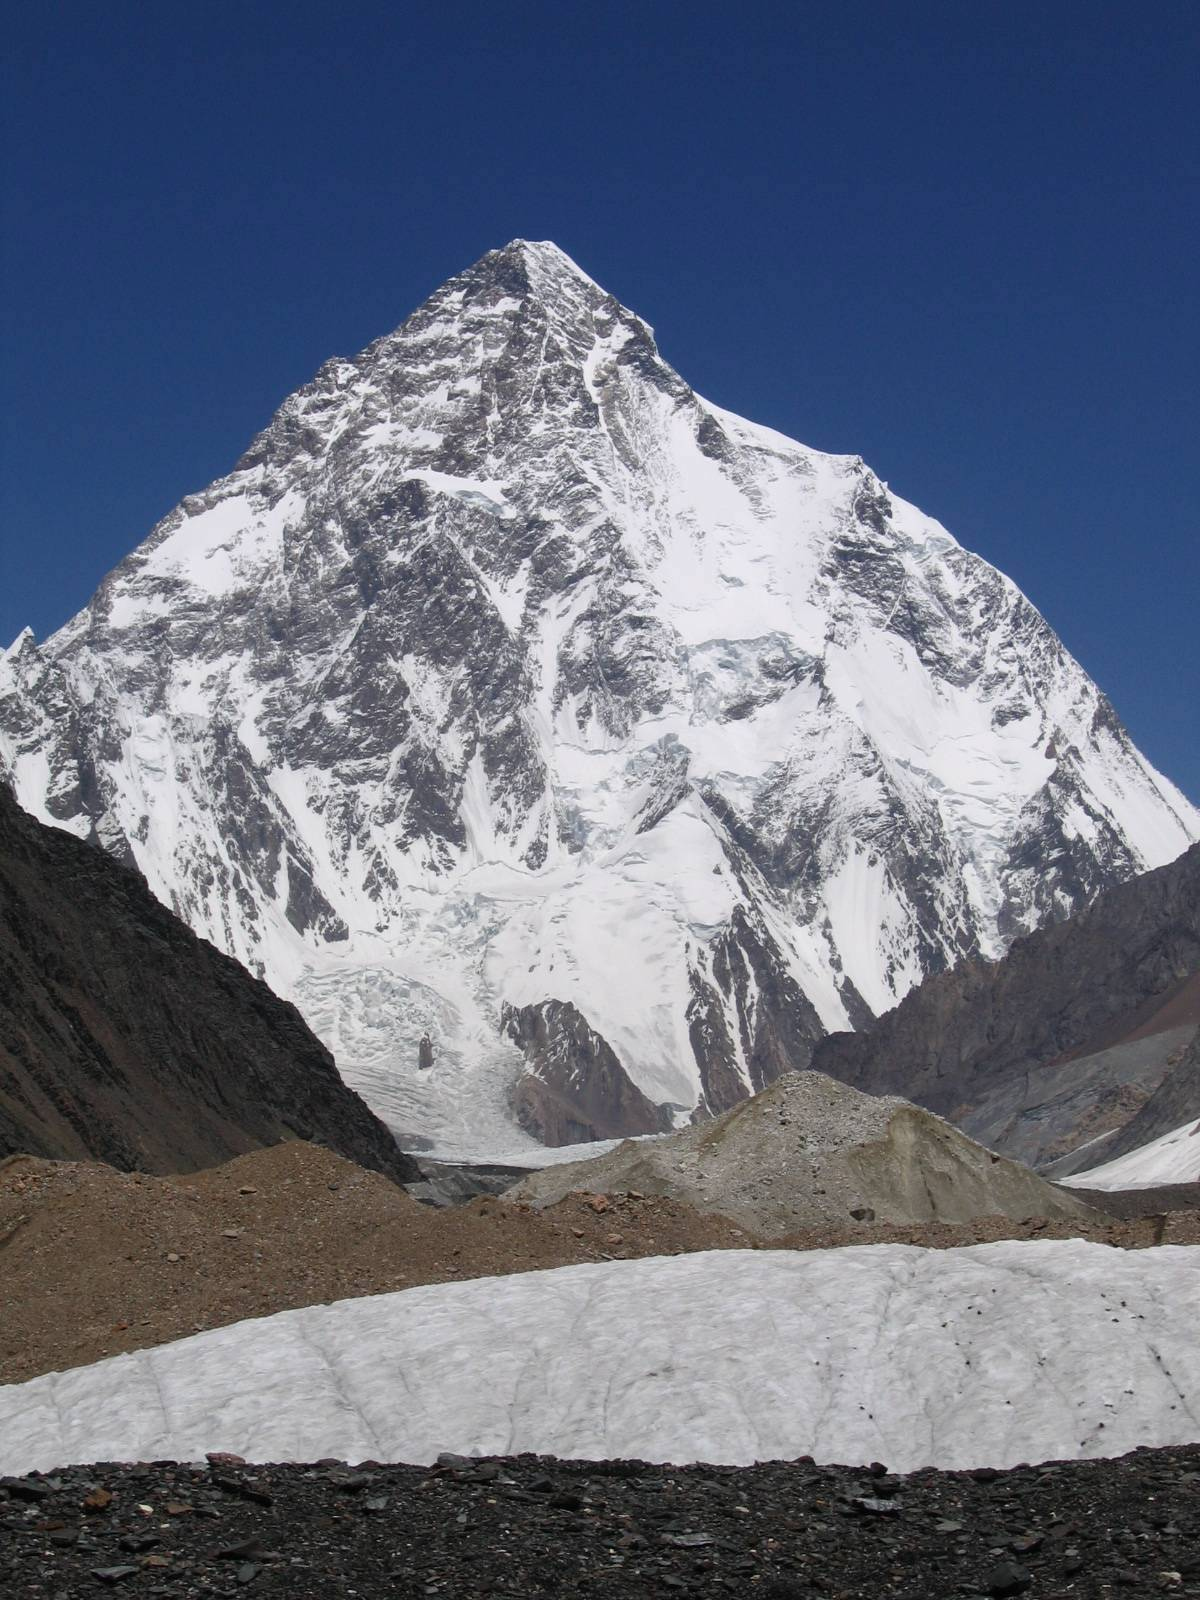 K2 (8611m) as seen in summer. The Abruzzi Spur—the route of the first ascent by Italians in 1954 and the route used for the first winter ascent on January 16, 2021, by 10 Nepali climbers—follows the right-hand skyline. [Photo] Svy123, Wikimedia Commons